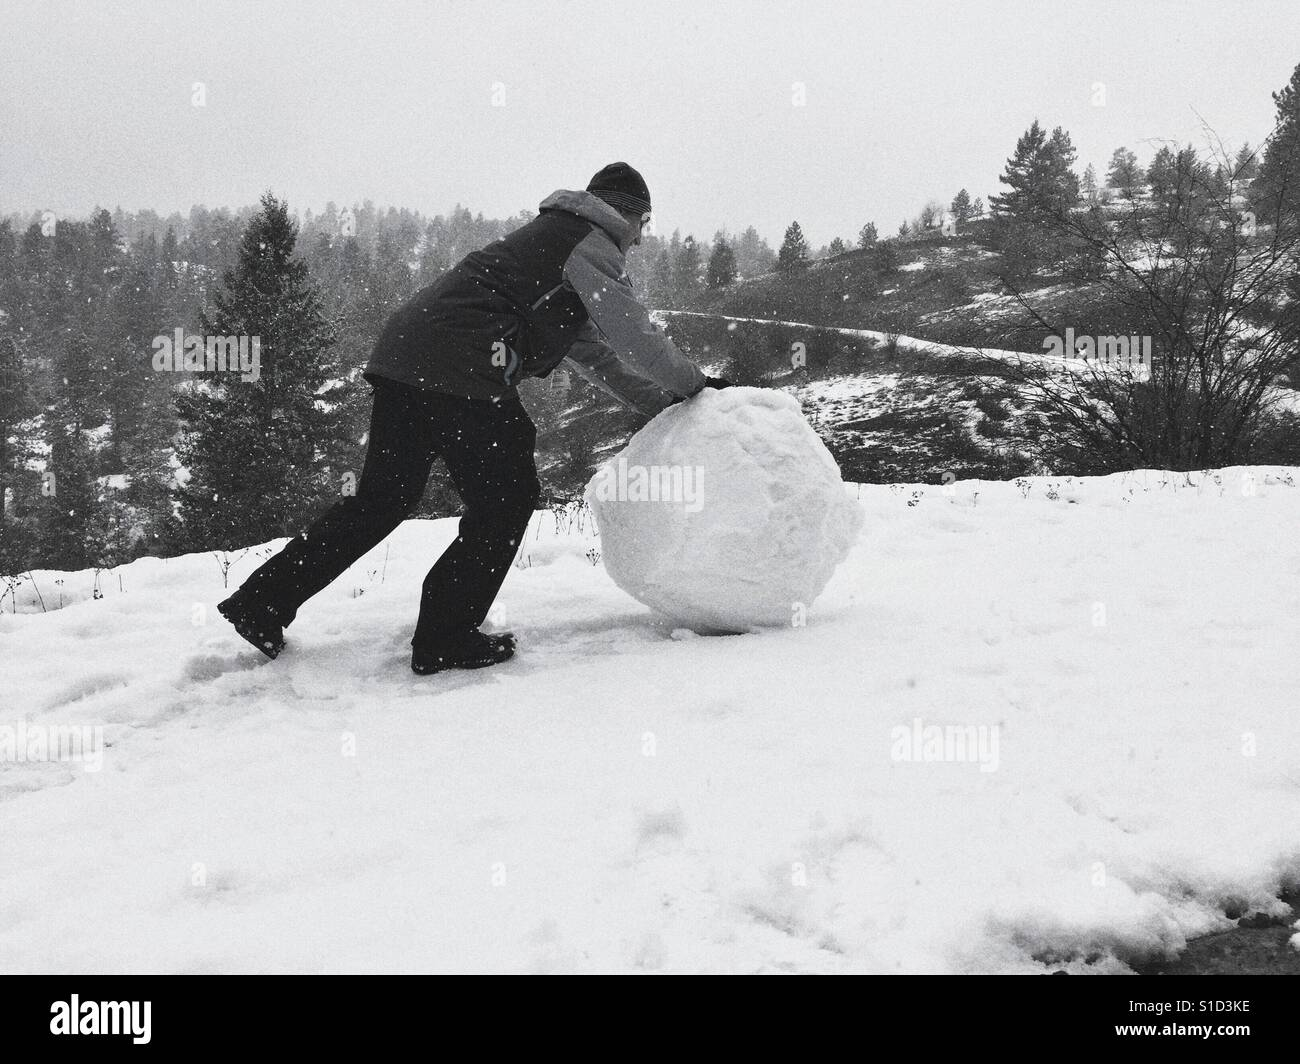 Young man rolling a large snow ball up a hill during a snow fall. In black and white. Room for copy. - Stock Image